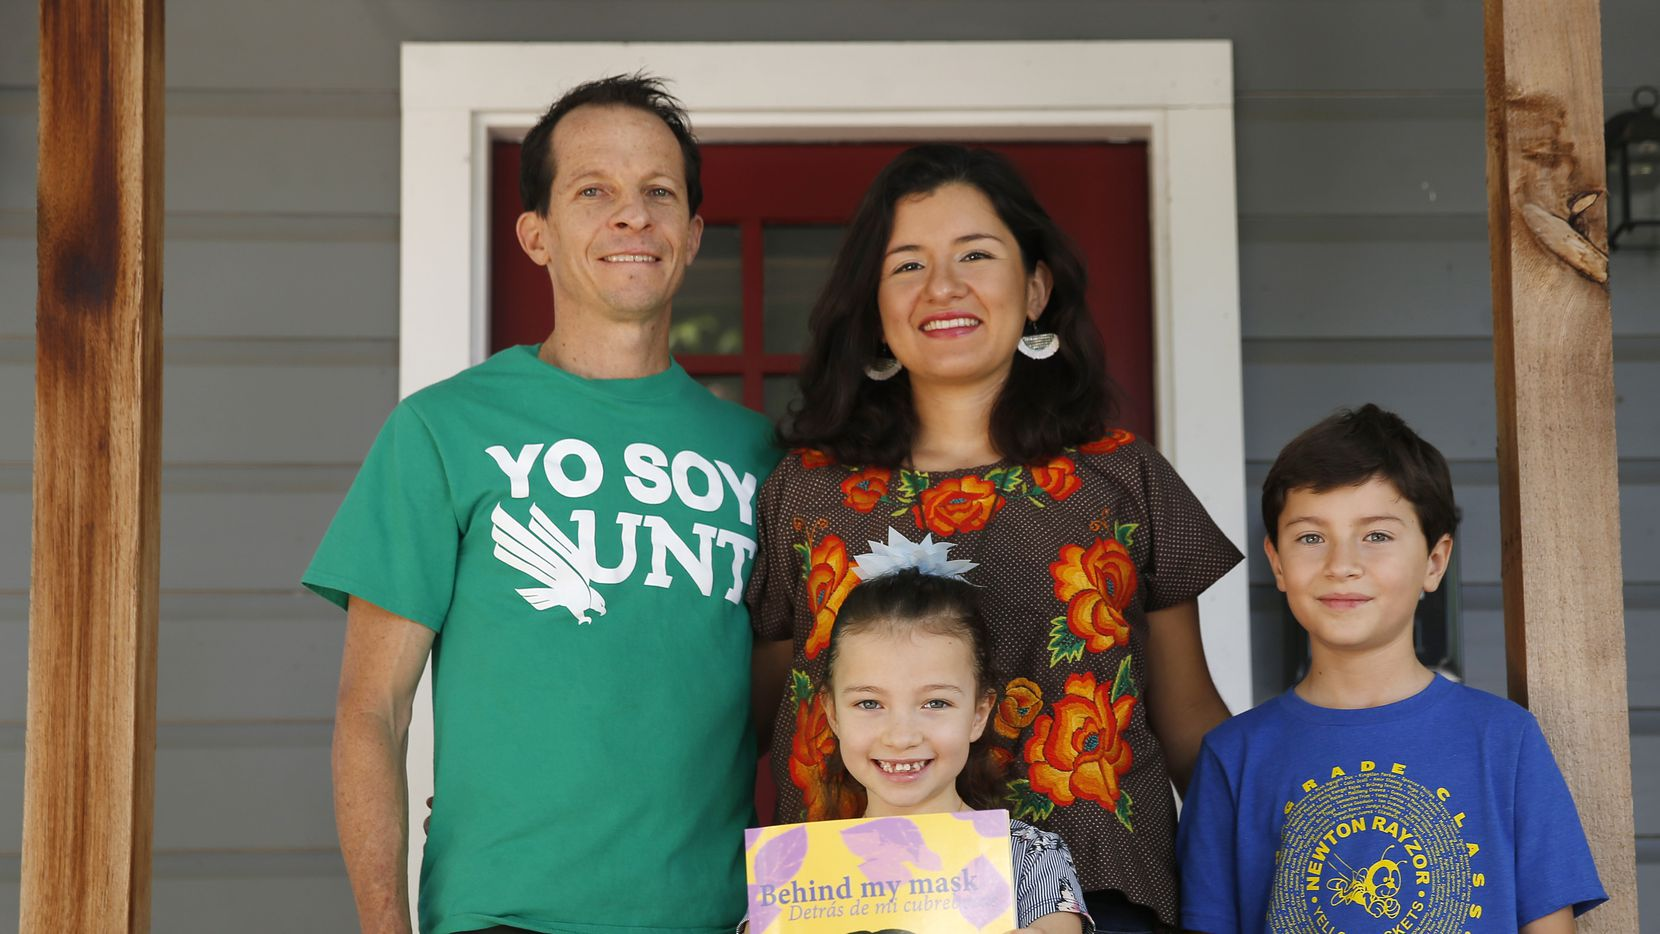 Dan Heiman and his wife, Martha Samaniego Calderón, self-published a book to help children — including their own kids, 7-year-old Natalia and 11-year-old Nicolás — cope with the fears of the COVID-19 pandemic.